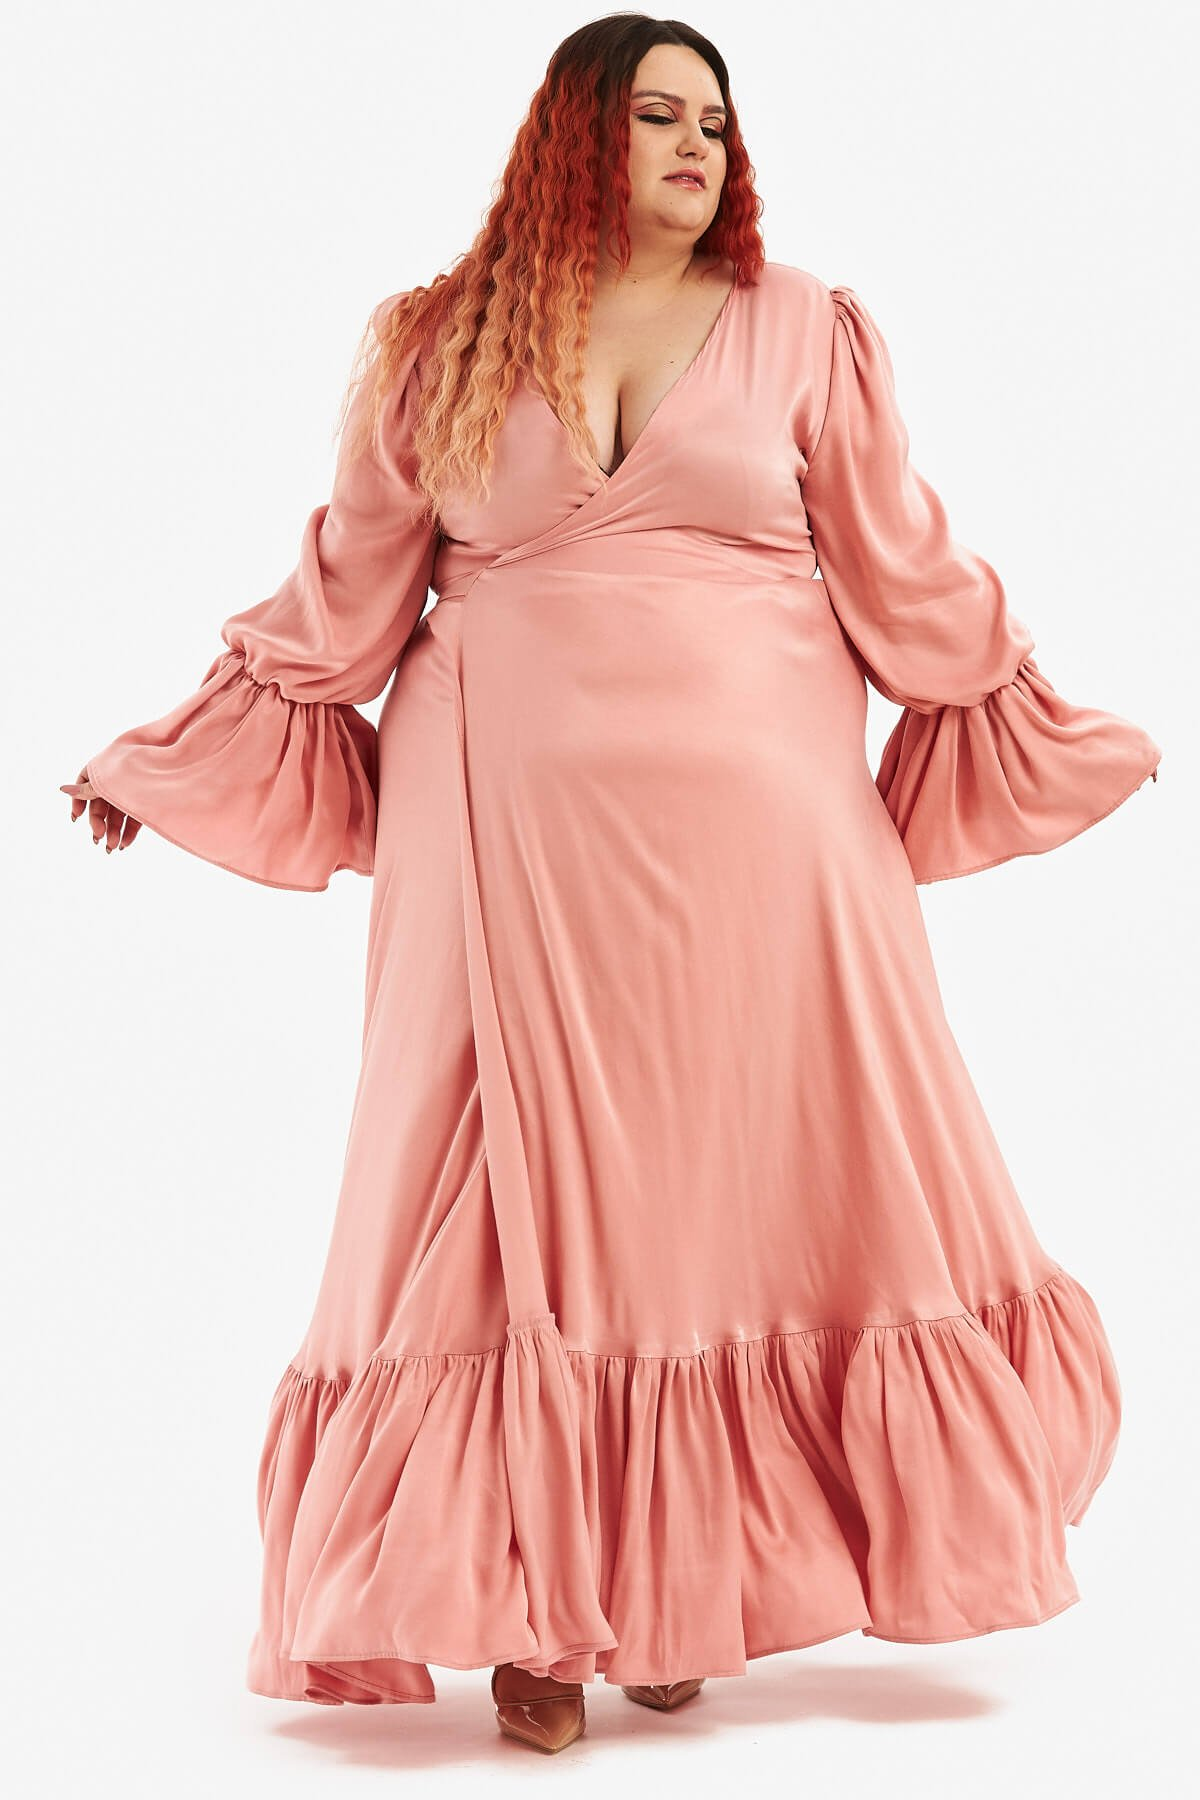 LOUD-BODIES-GABRIELLE-SUSTAINABLE-CUPRO-DRESS-PINK-8